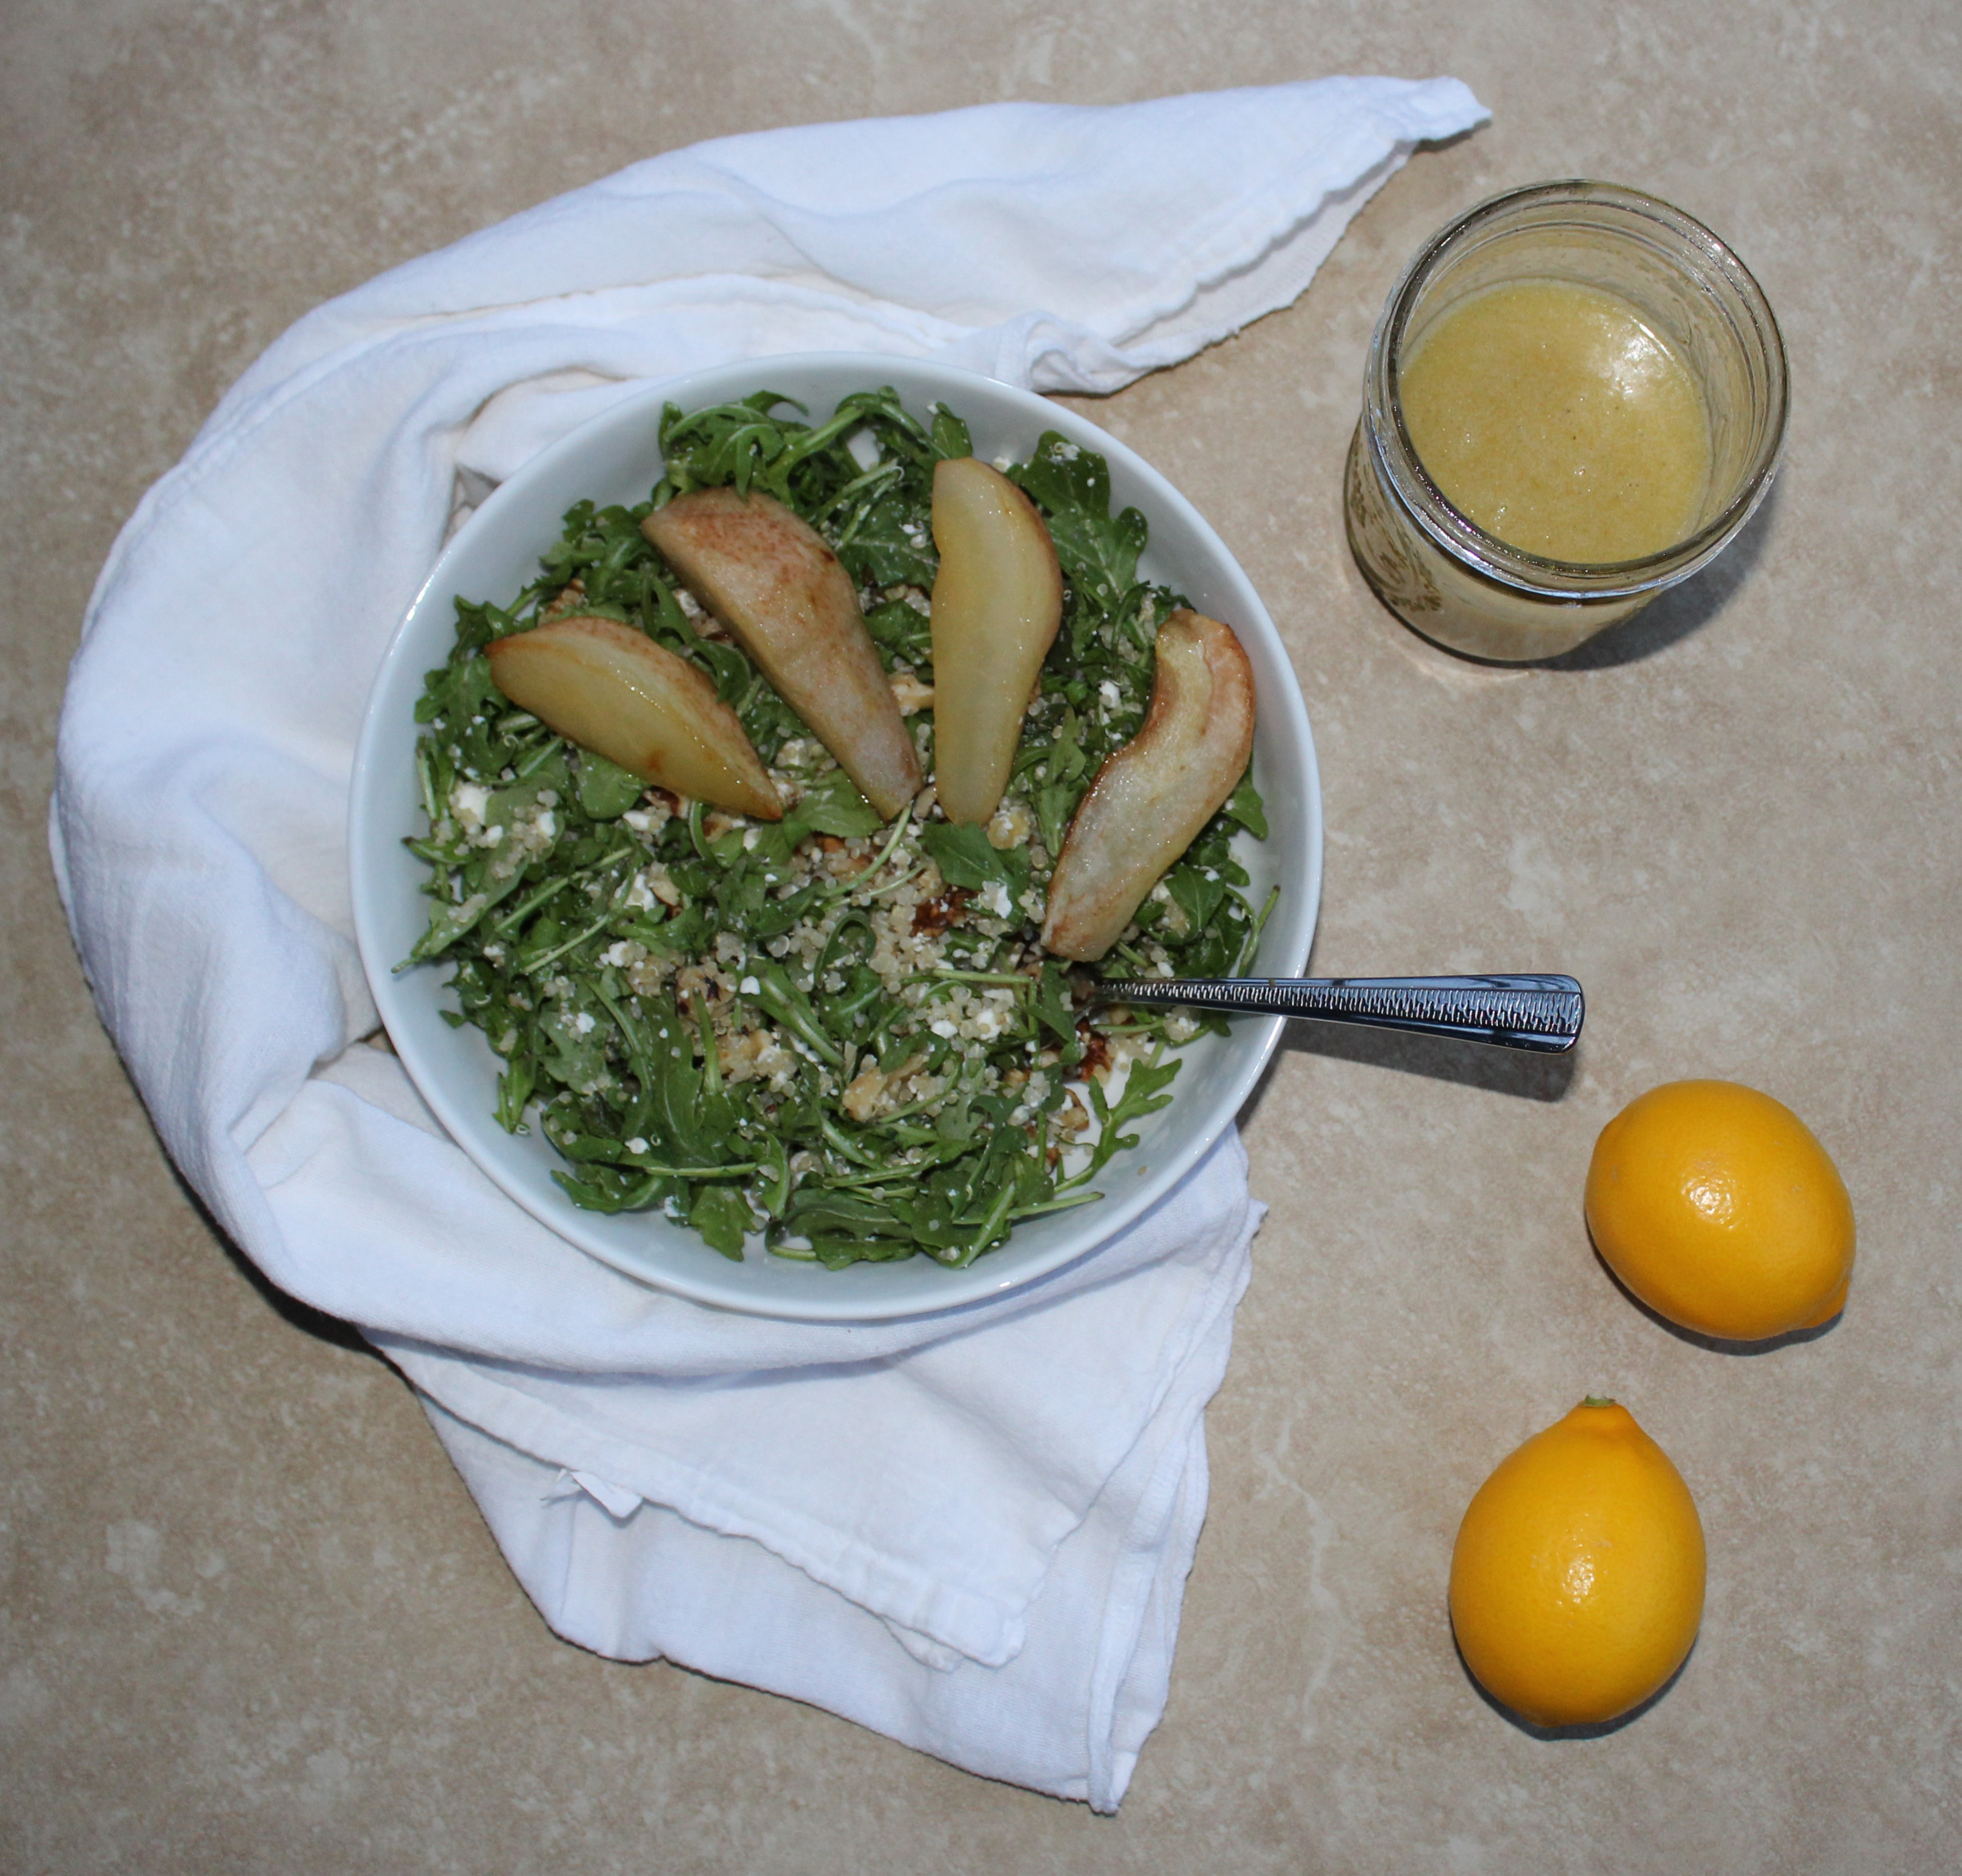 Arugula Quinoa Salad with Baked Pears and Meyer Lemon Vinaigrette 1